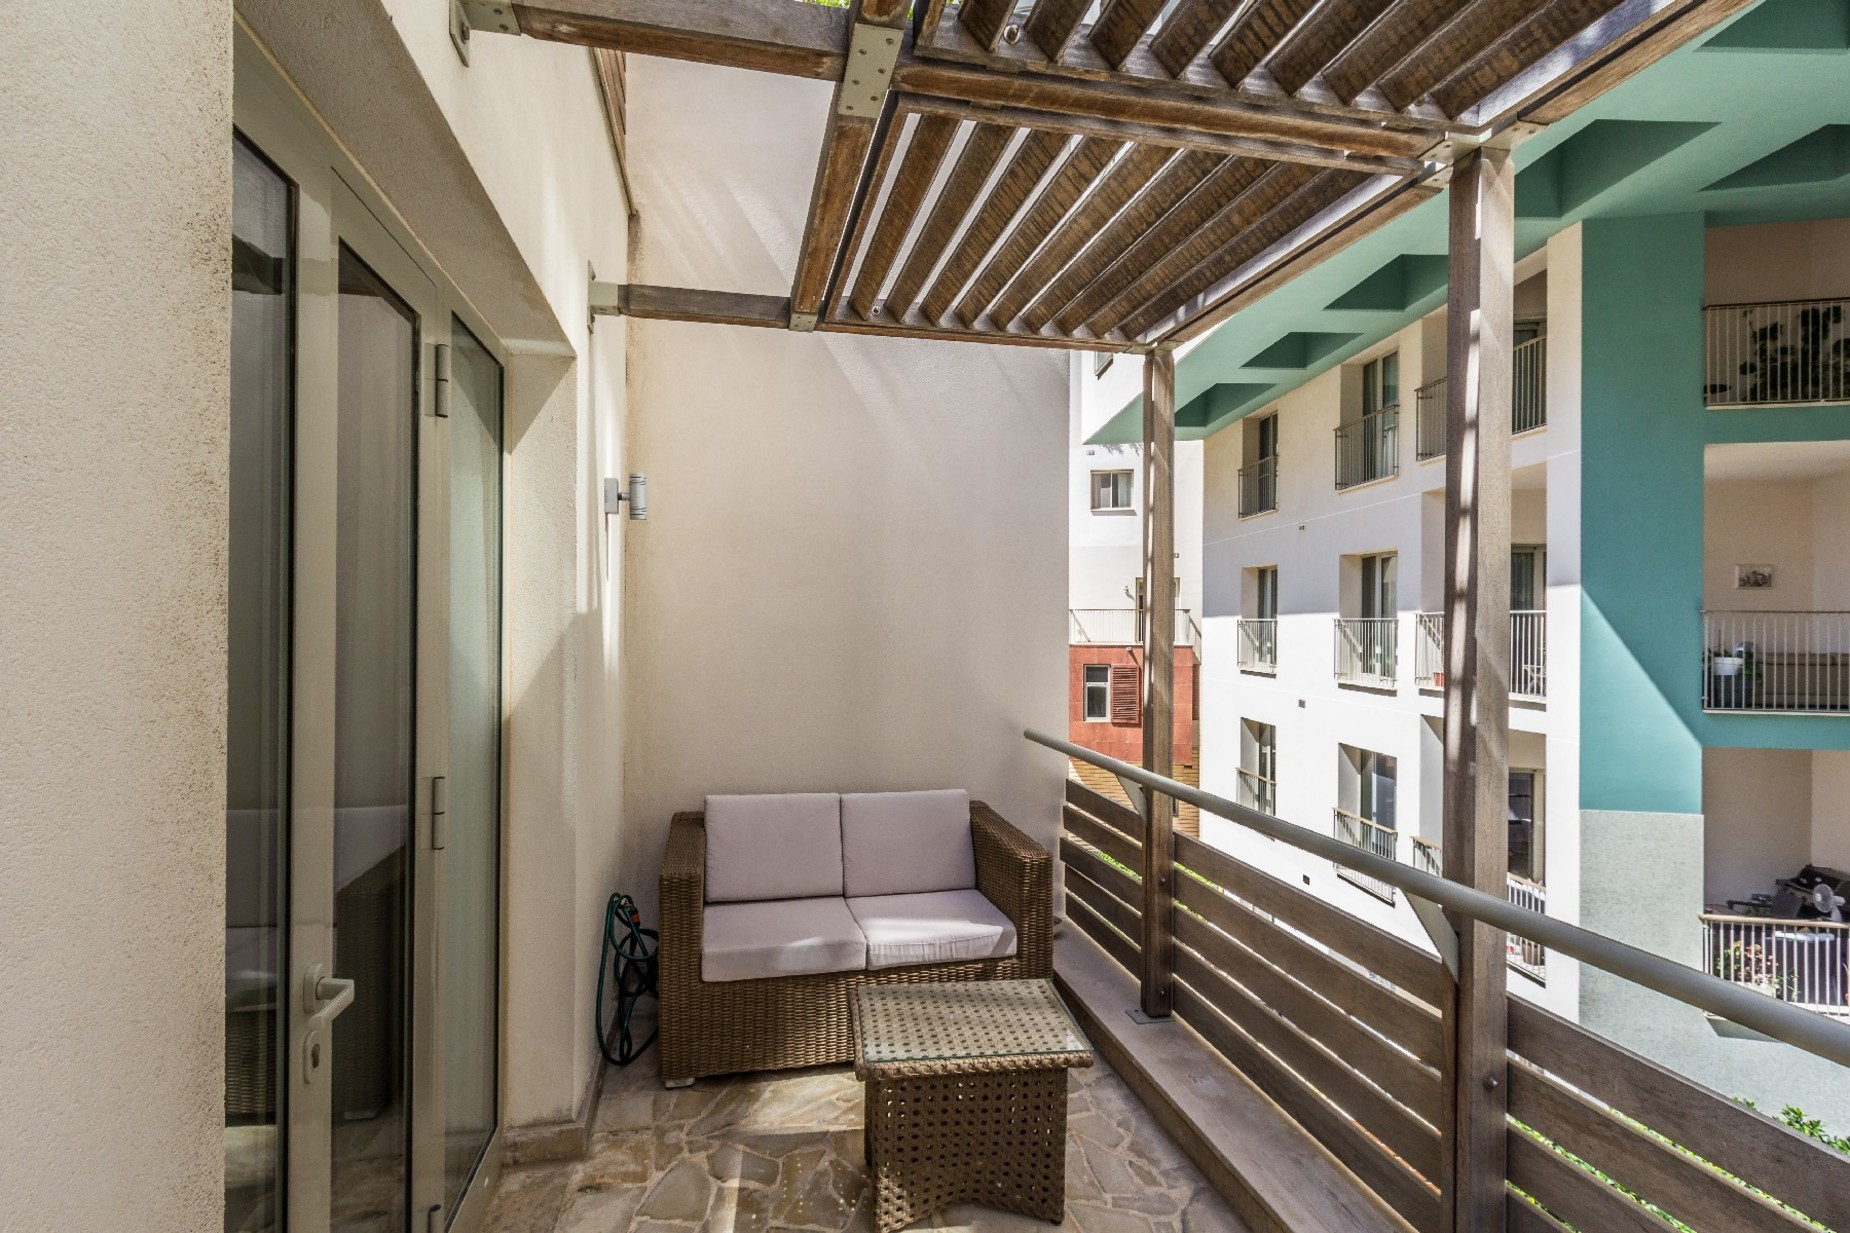 4 bed Apartment For Sale in Sliema, Sliema - thumb 17